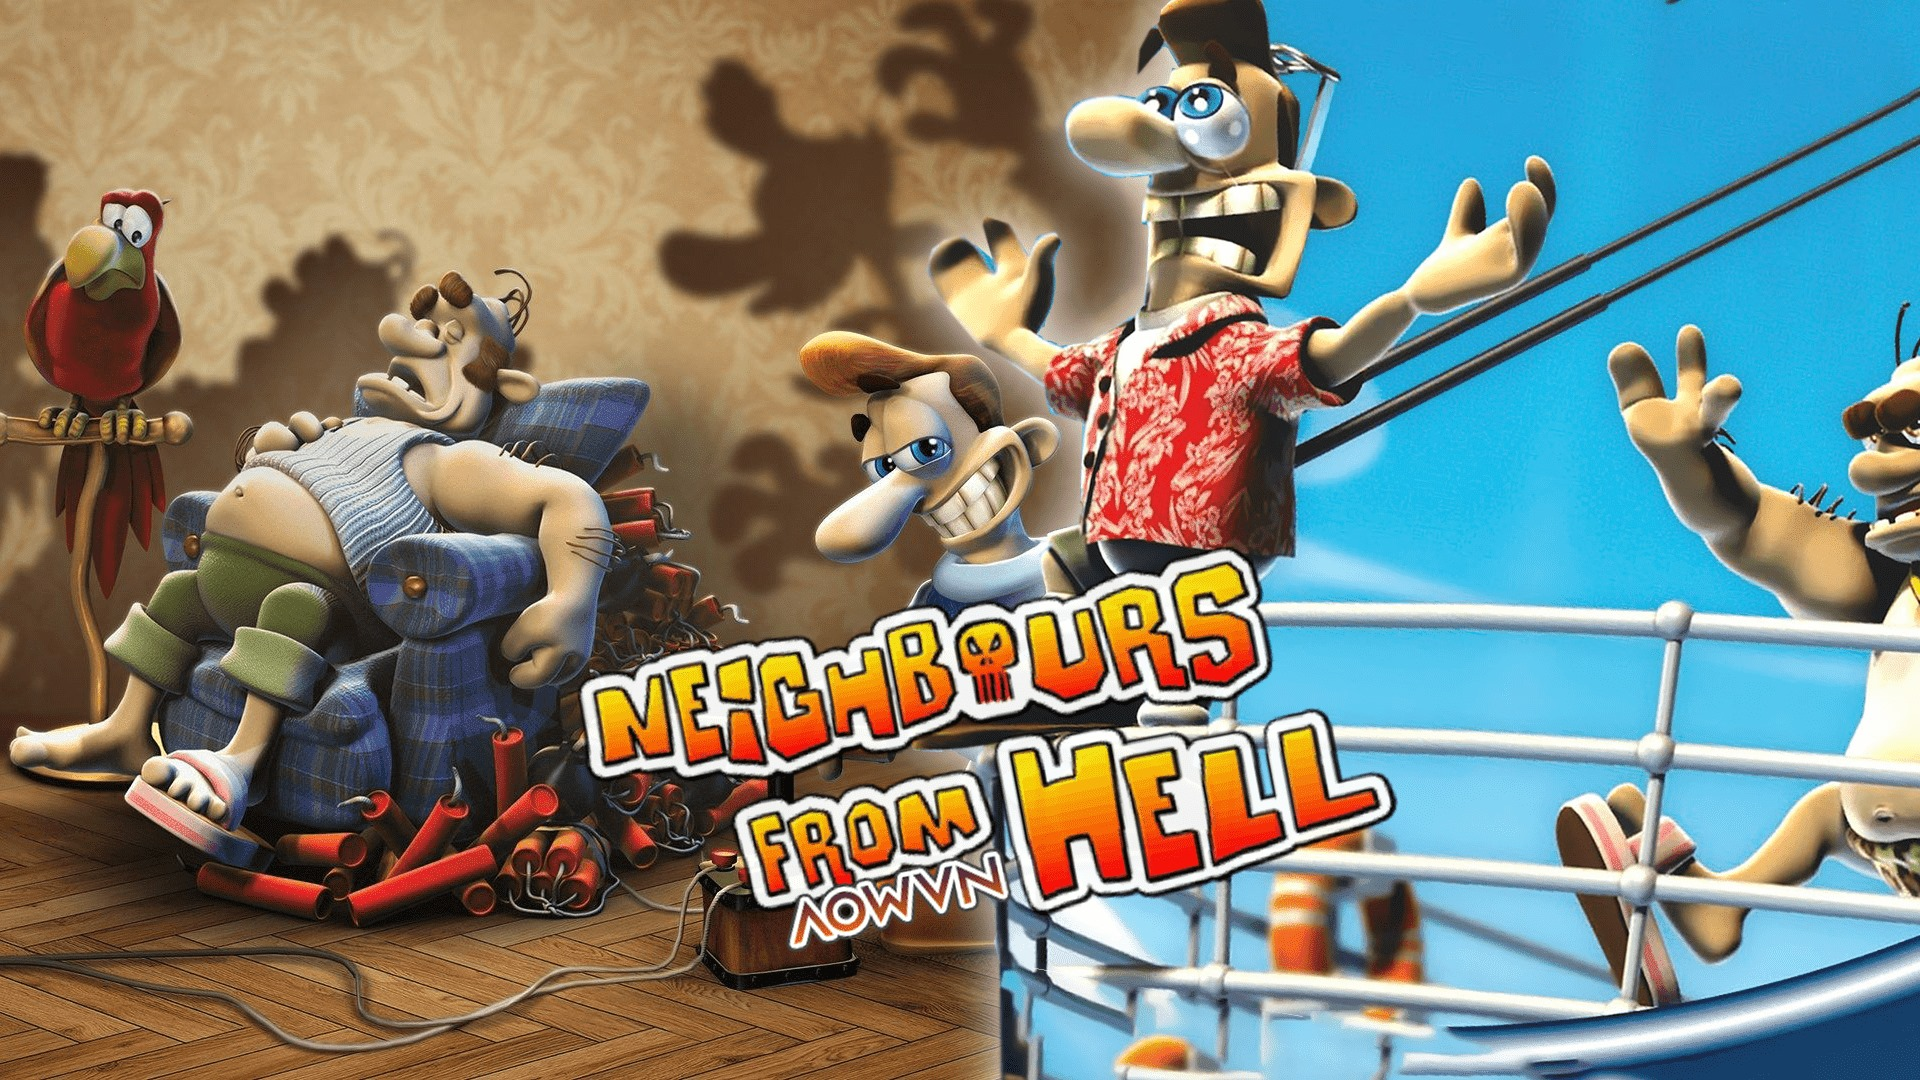 Tải game Neighbours From Hell Việt Hoá cho Android